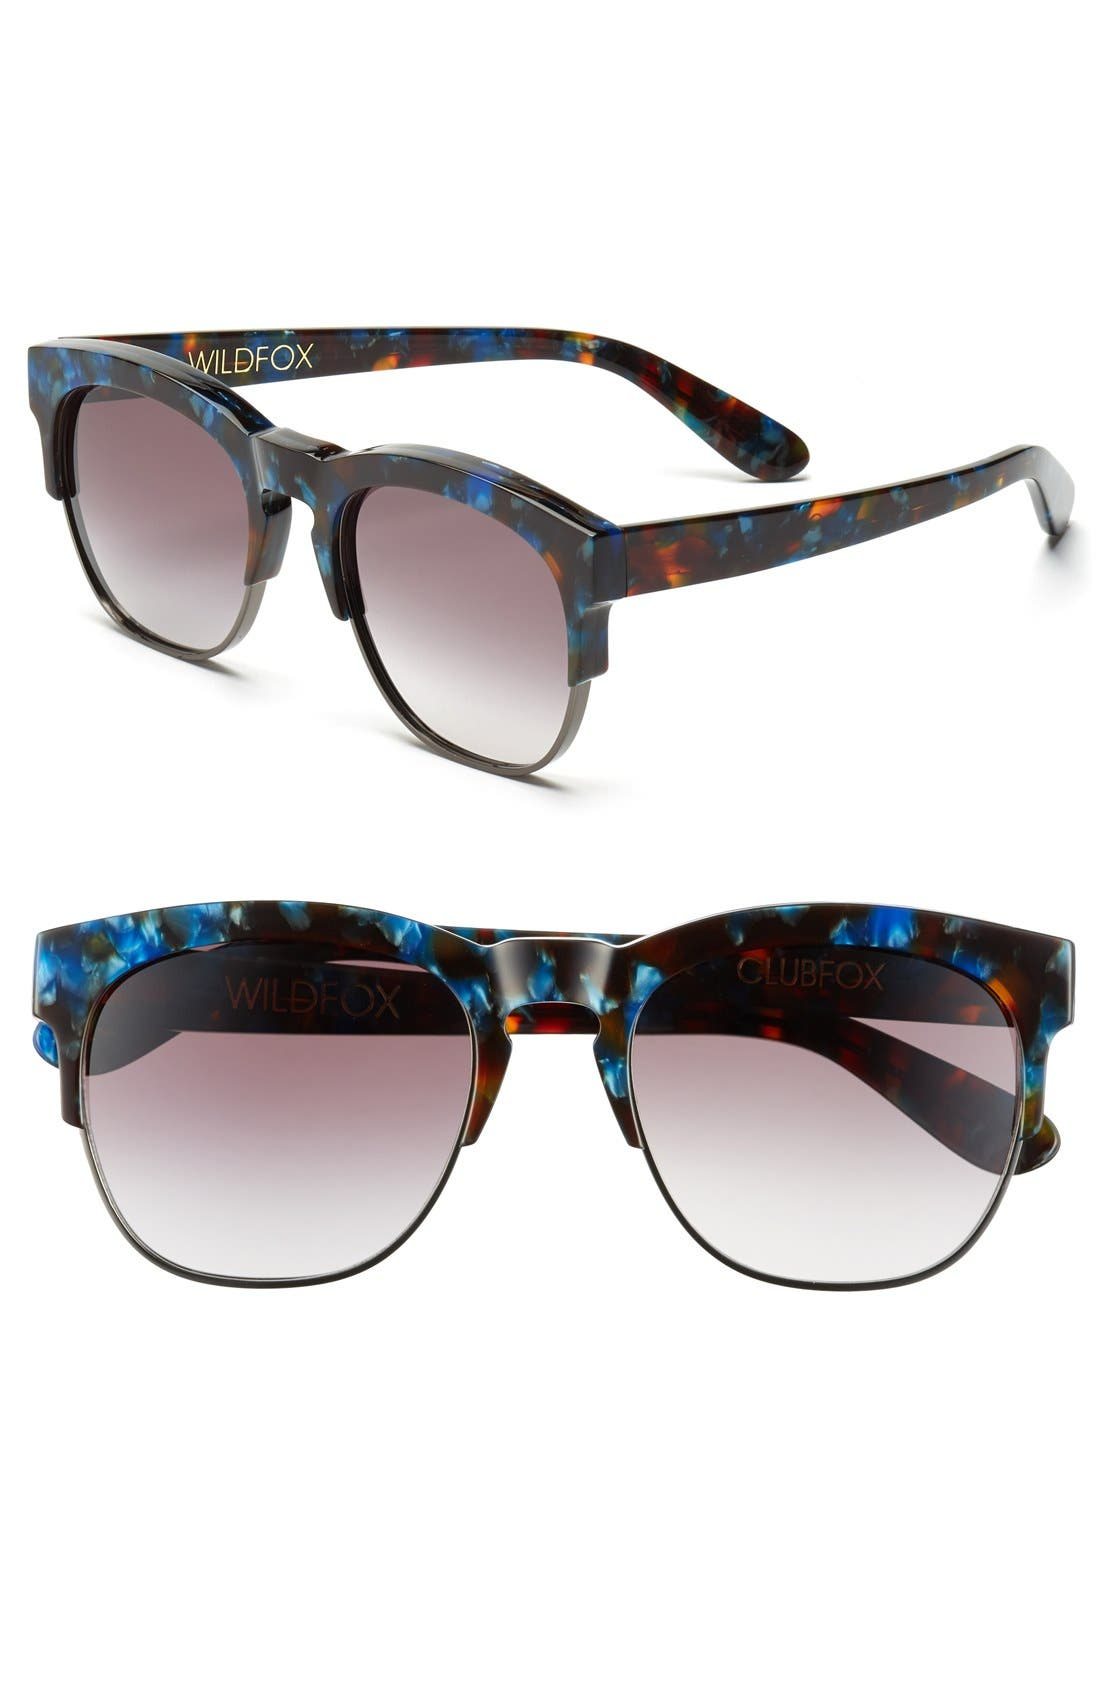 Alternate Image 1 Selected - Wildfox 'Club Fox' 52mm Sunglasses